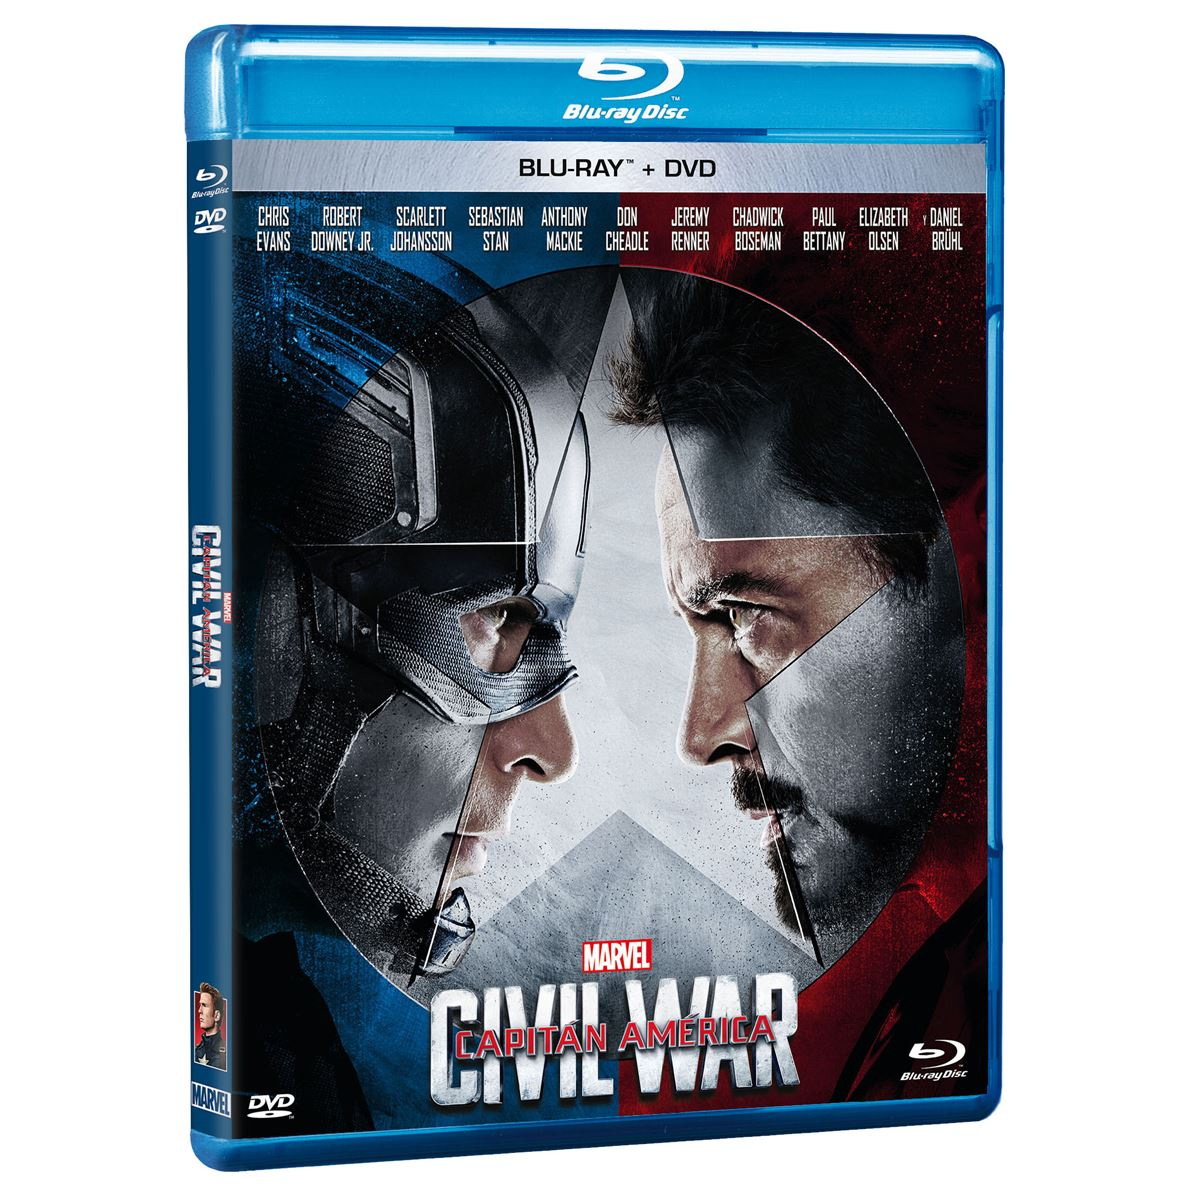 Br/dvd capitán américa civil war  - Sanborns